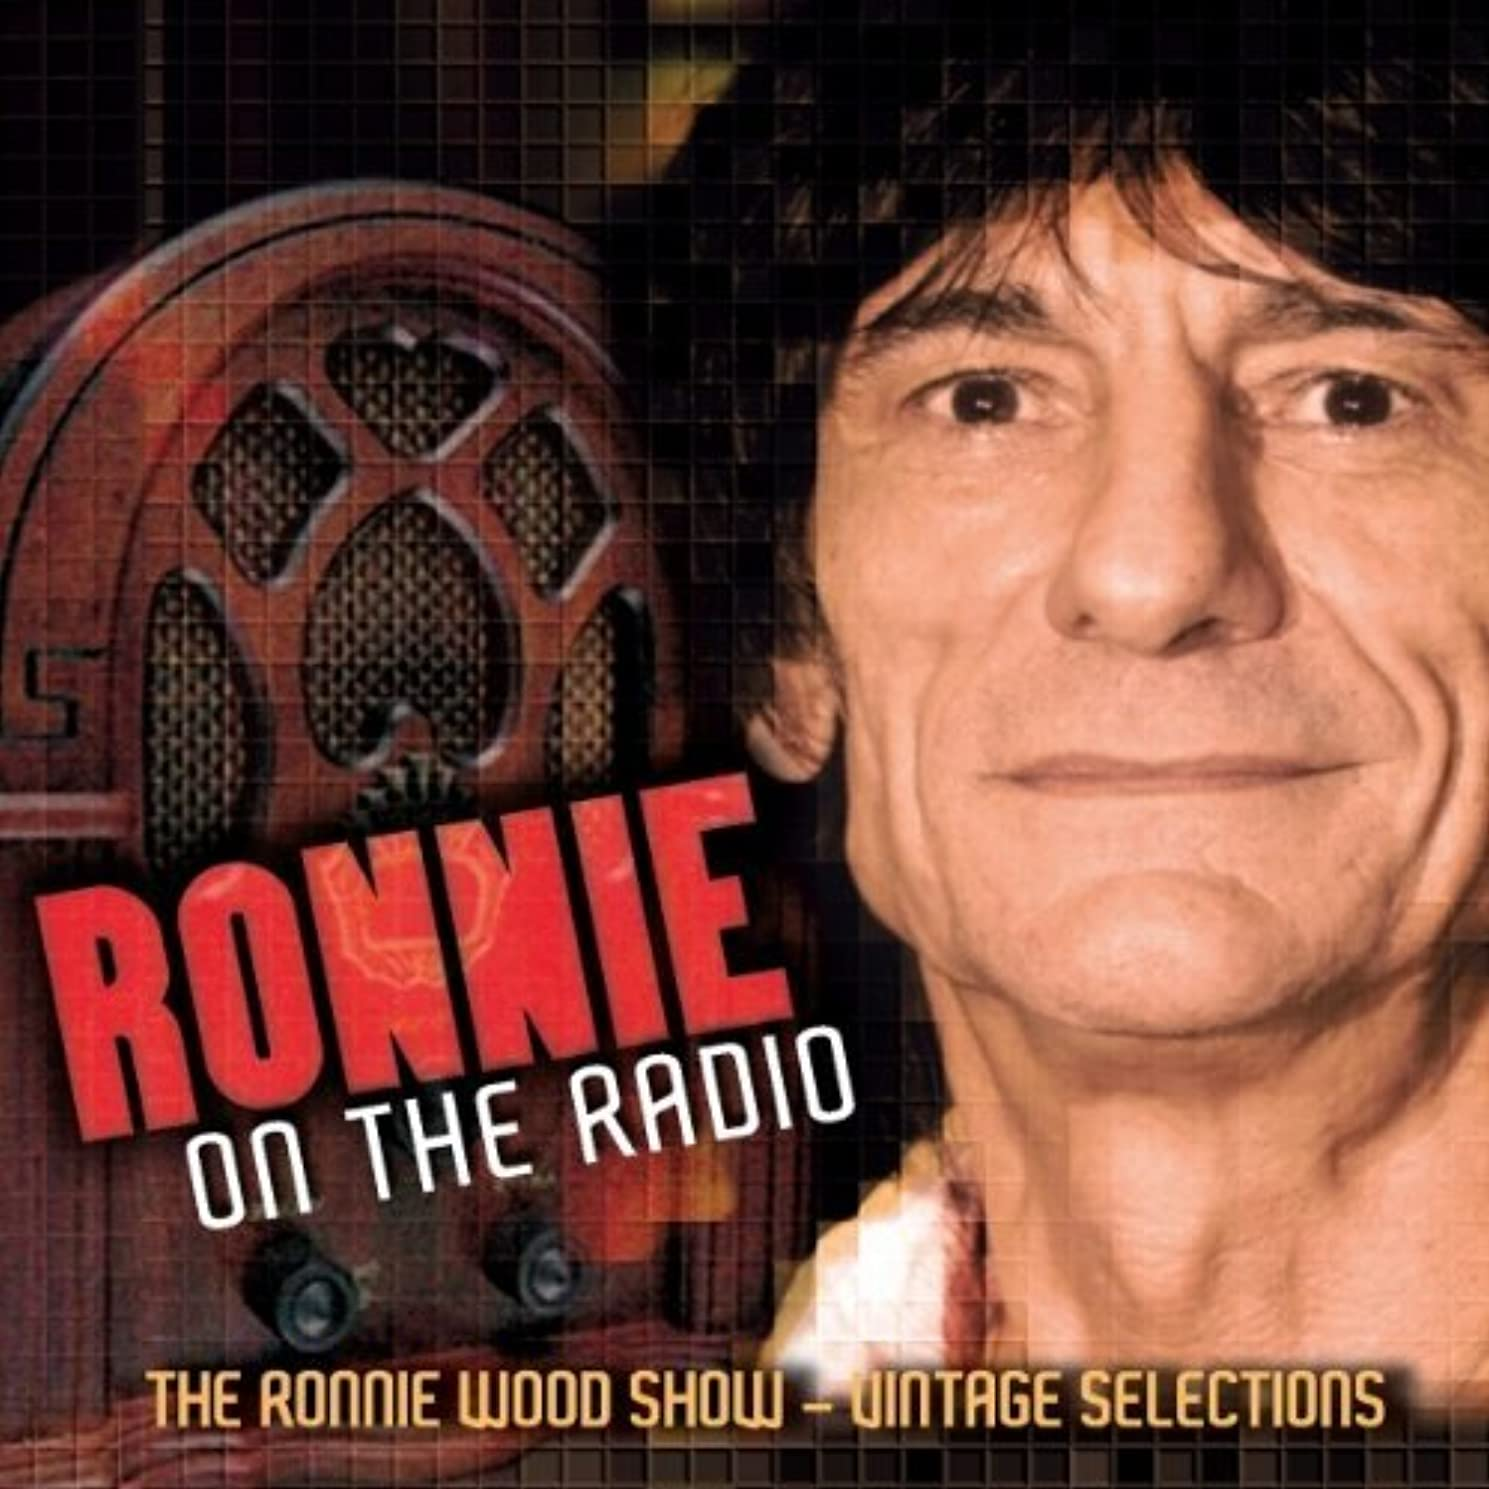 Ronnie On The Radio - The Ronnie Wood Show by Ronnie Wood (2011-11-08)